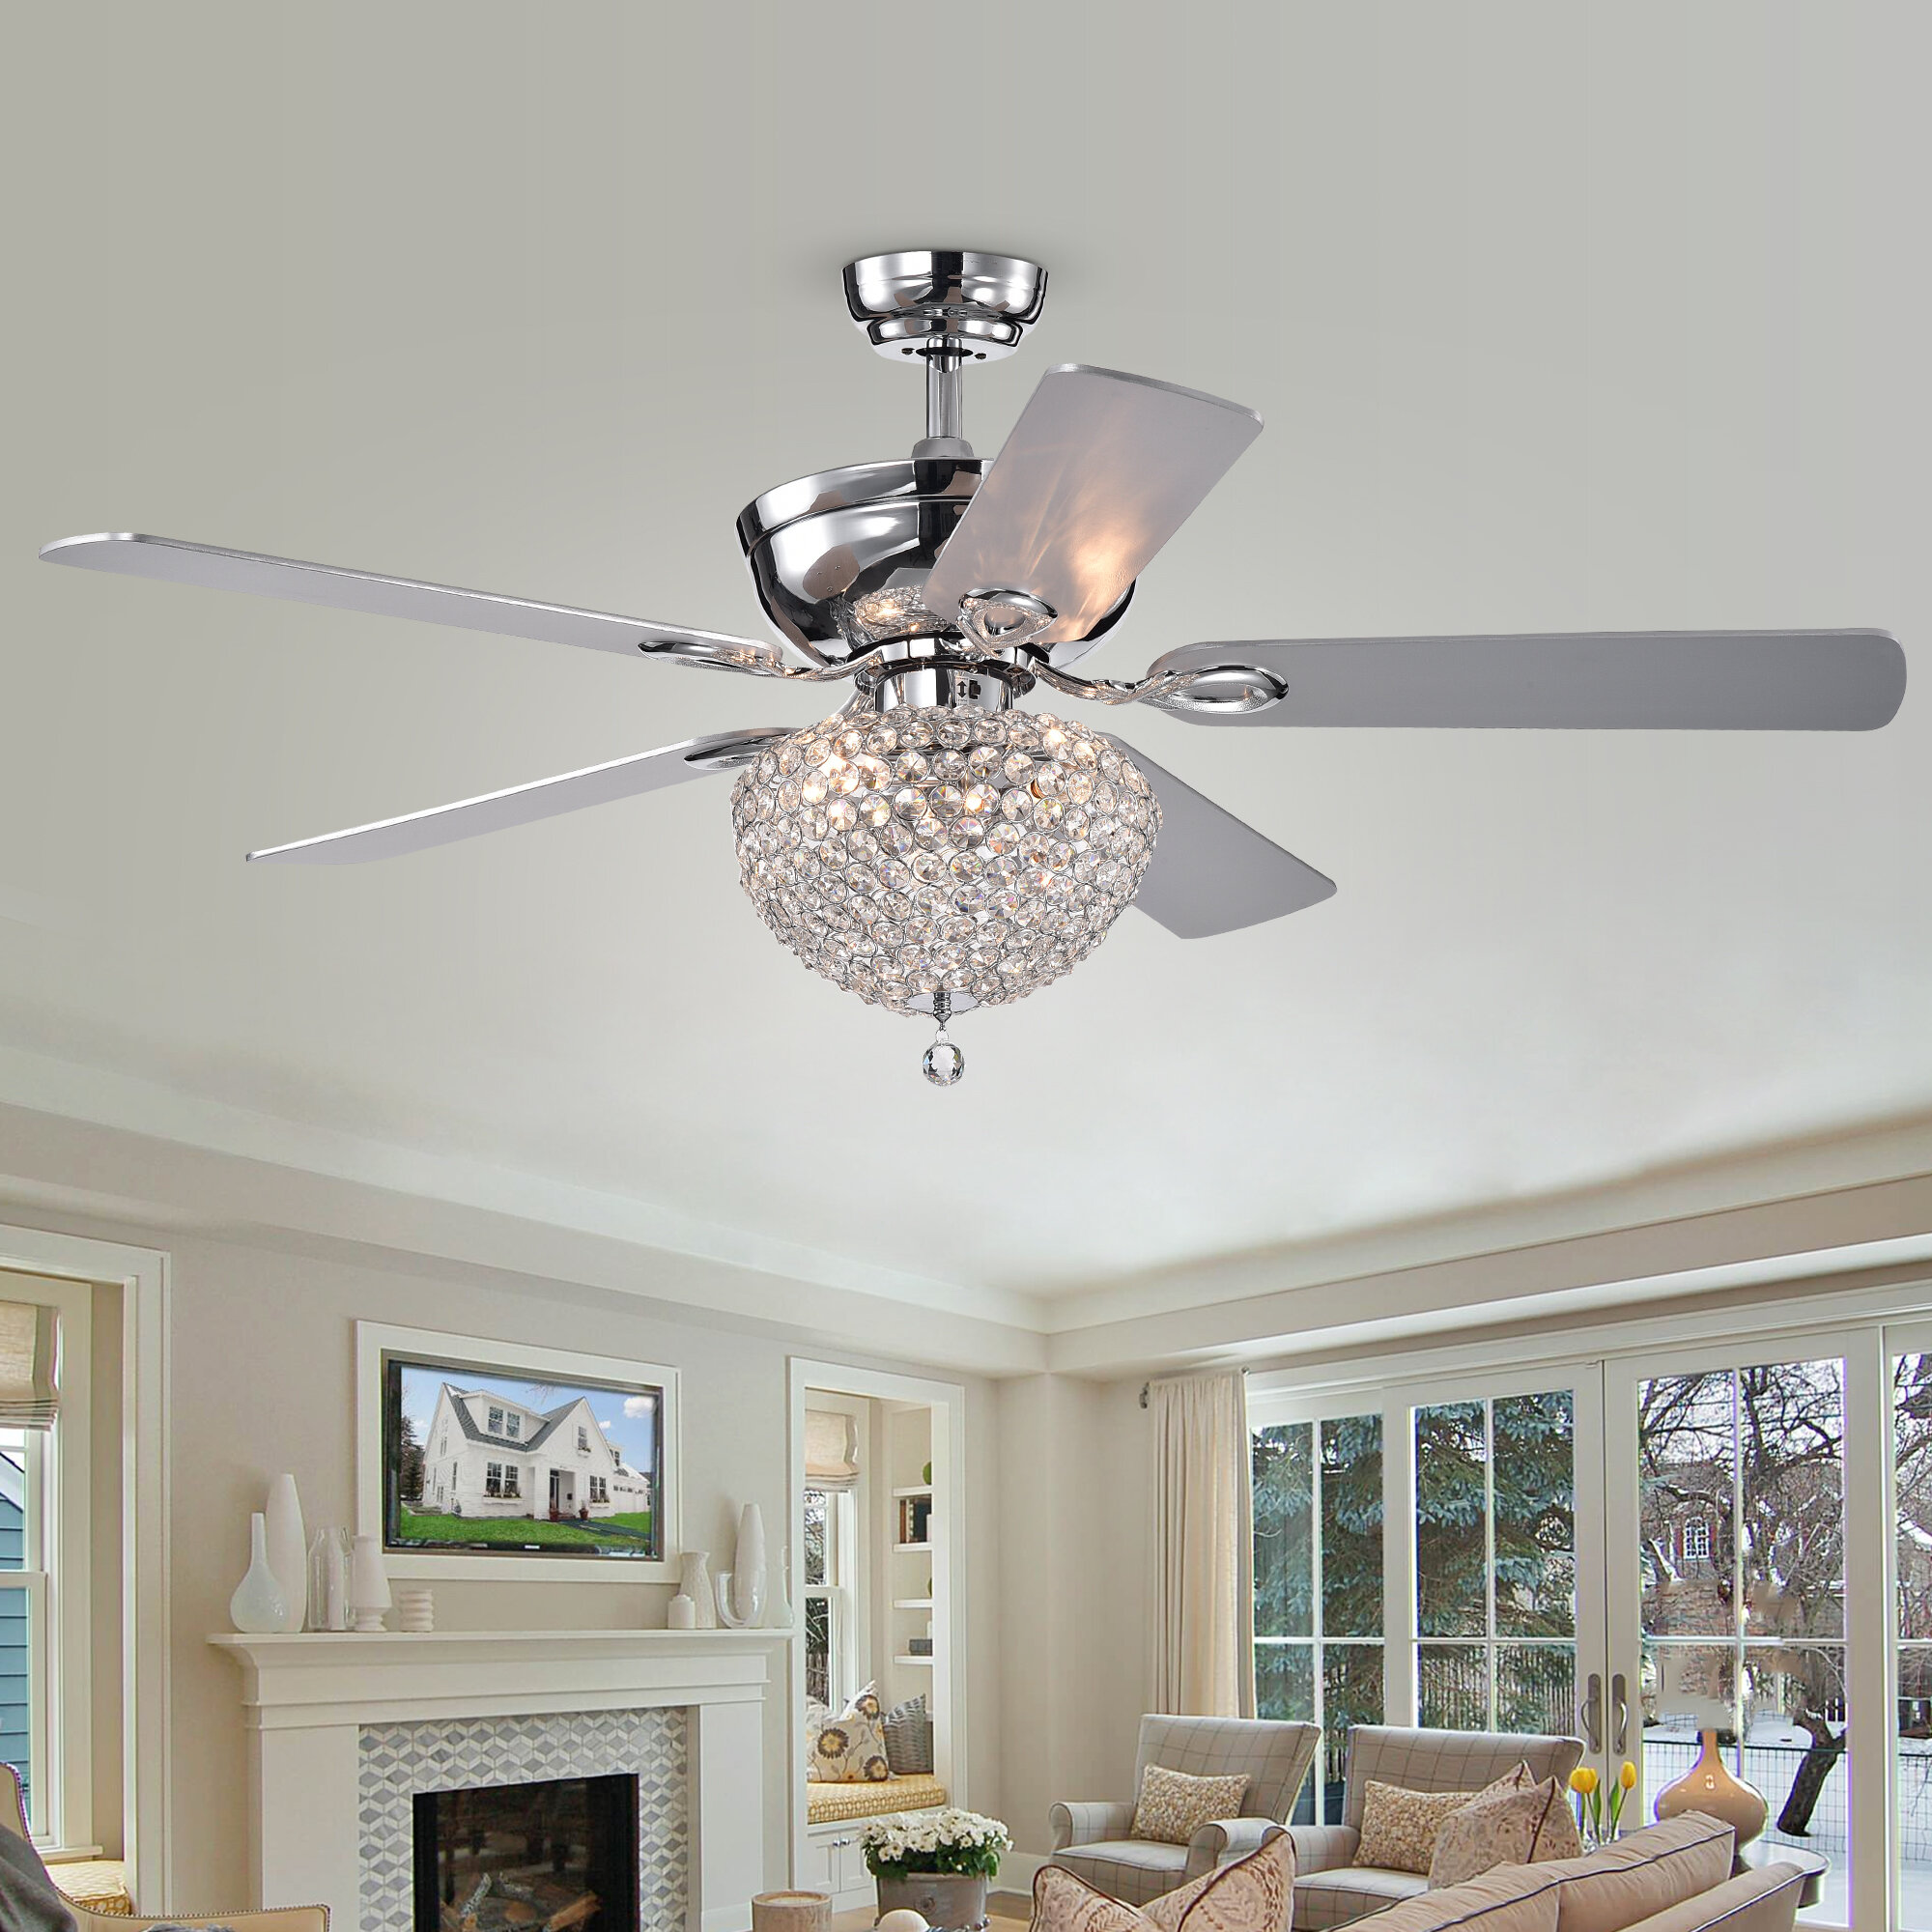 House Of Hampton 52 Yandell 5 Blade Crystal Ceiling Fan With Remote Control And Light Kit Included Reviews Wayfair